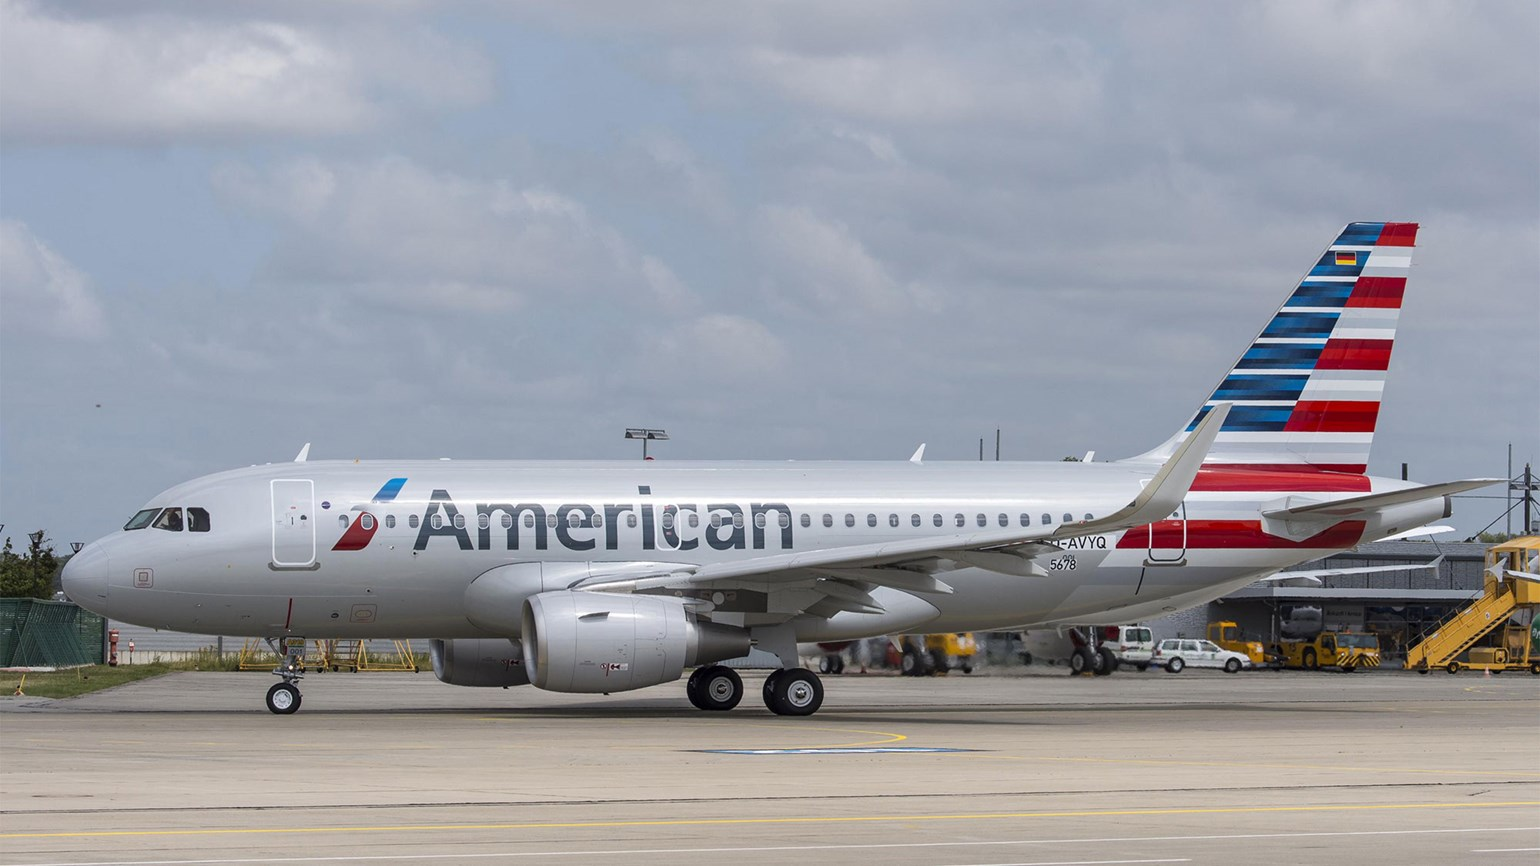 AA selling bundled fares to corporate travelers via NDC connection